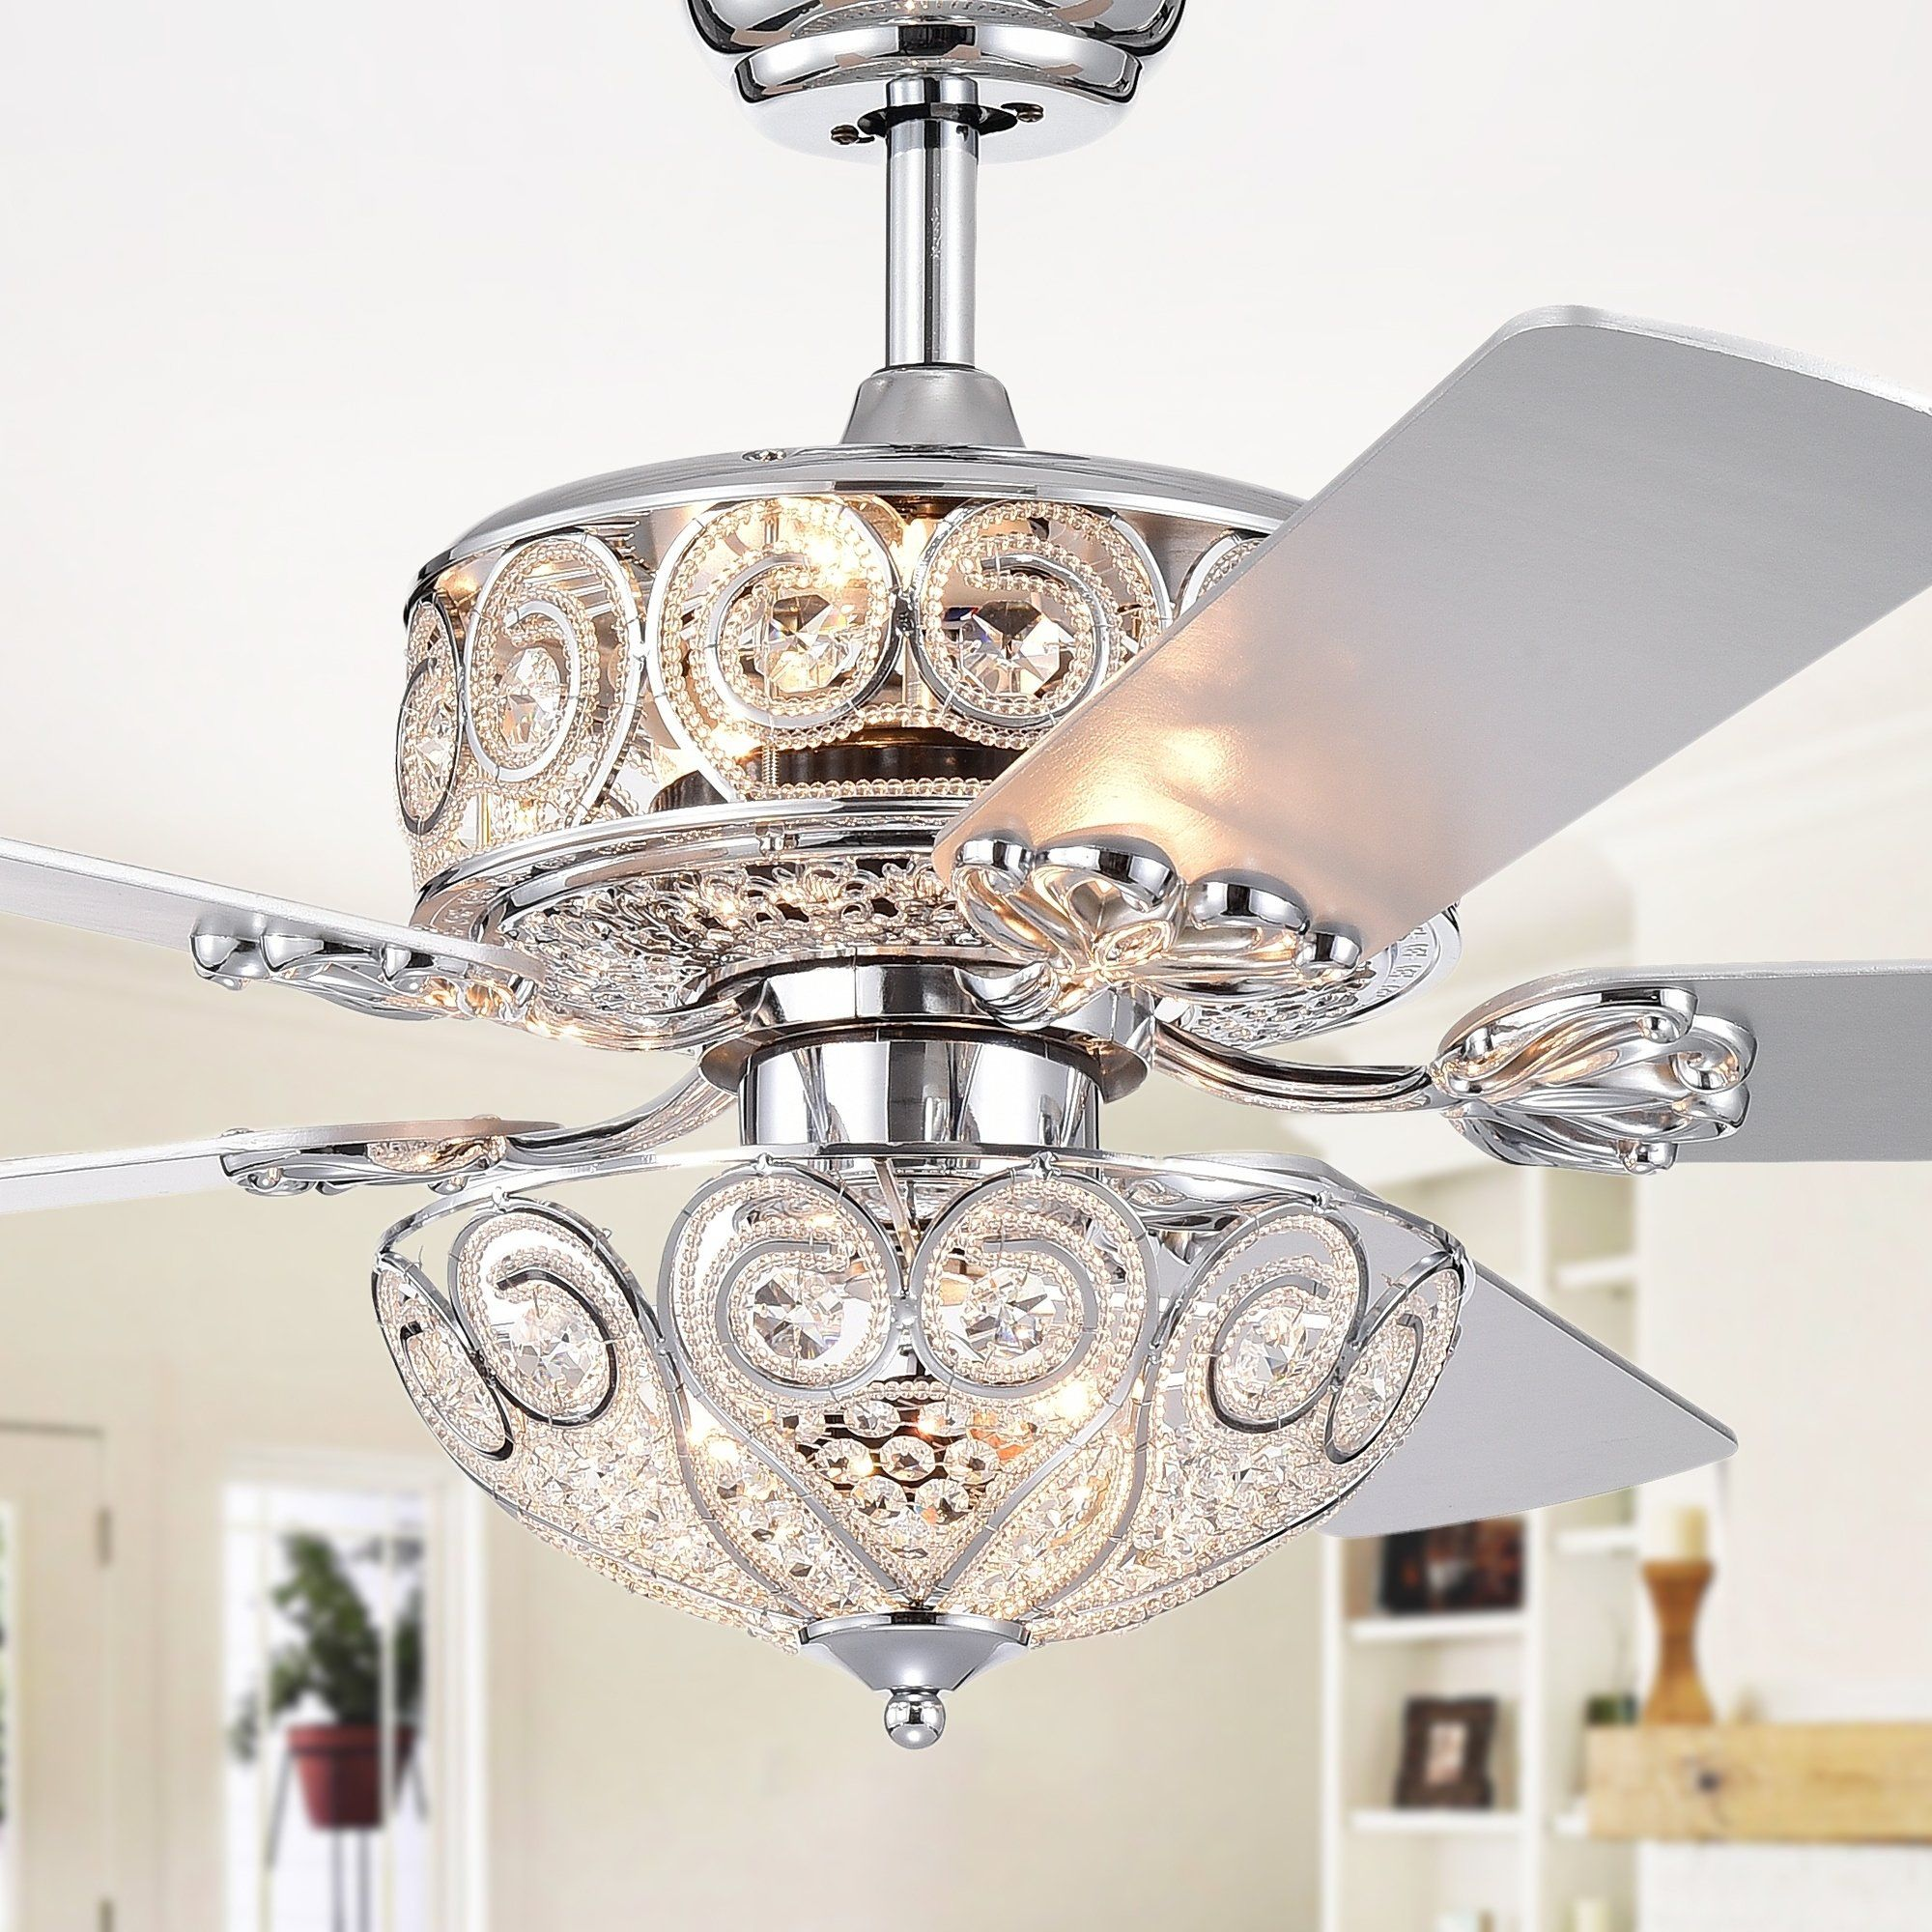 Catalina Chrome Finish 5 Blade 52 Inch Crystal Ceiling Fan